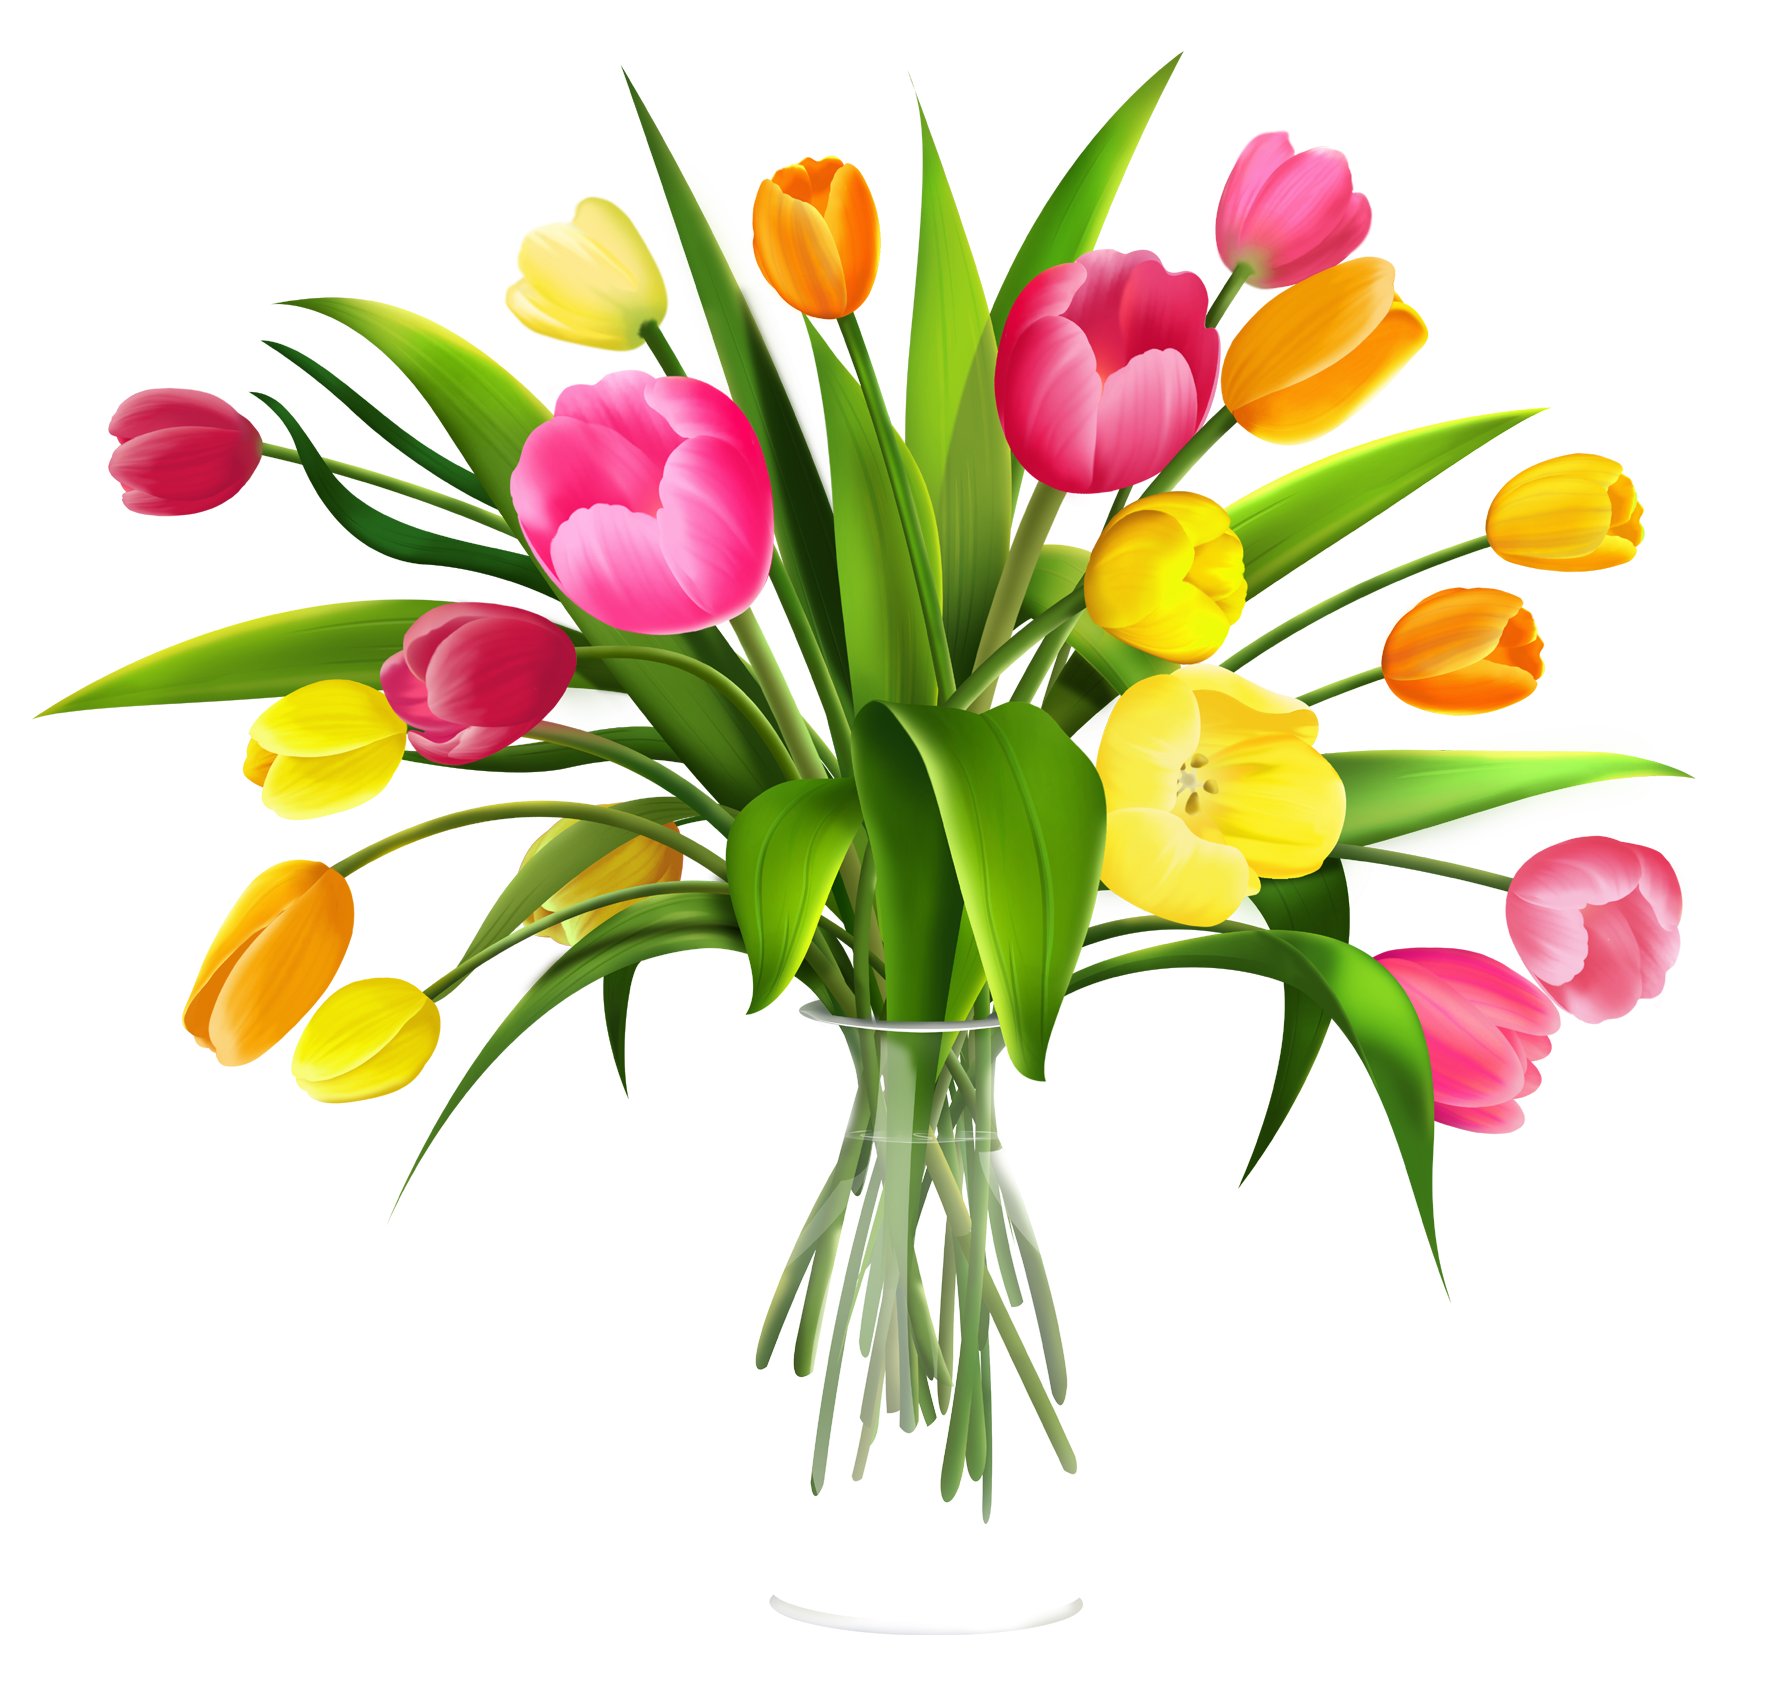 free clip art flowers in vase use these free images for your rh pinterest com free flower clip art to colour free flower clipart transparent background